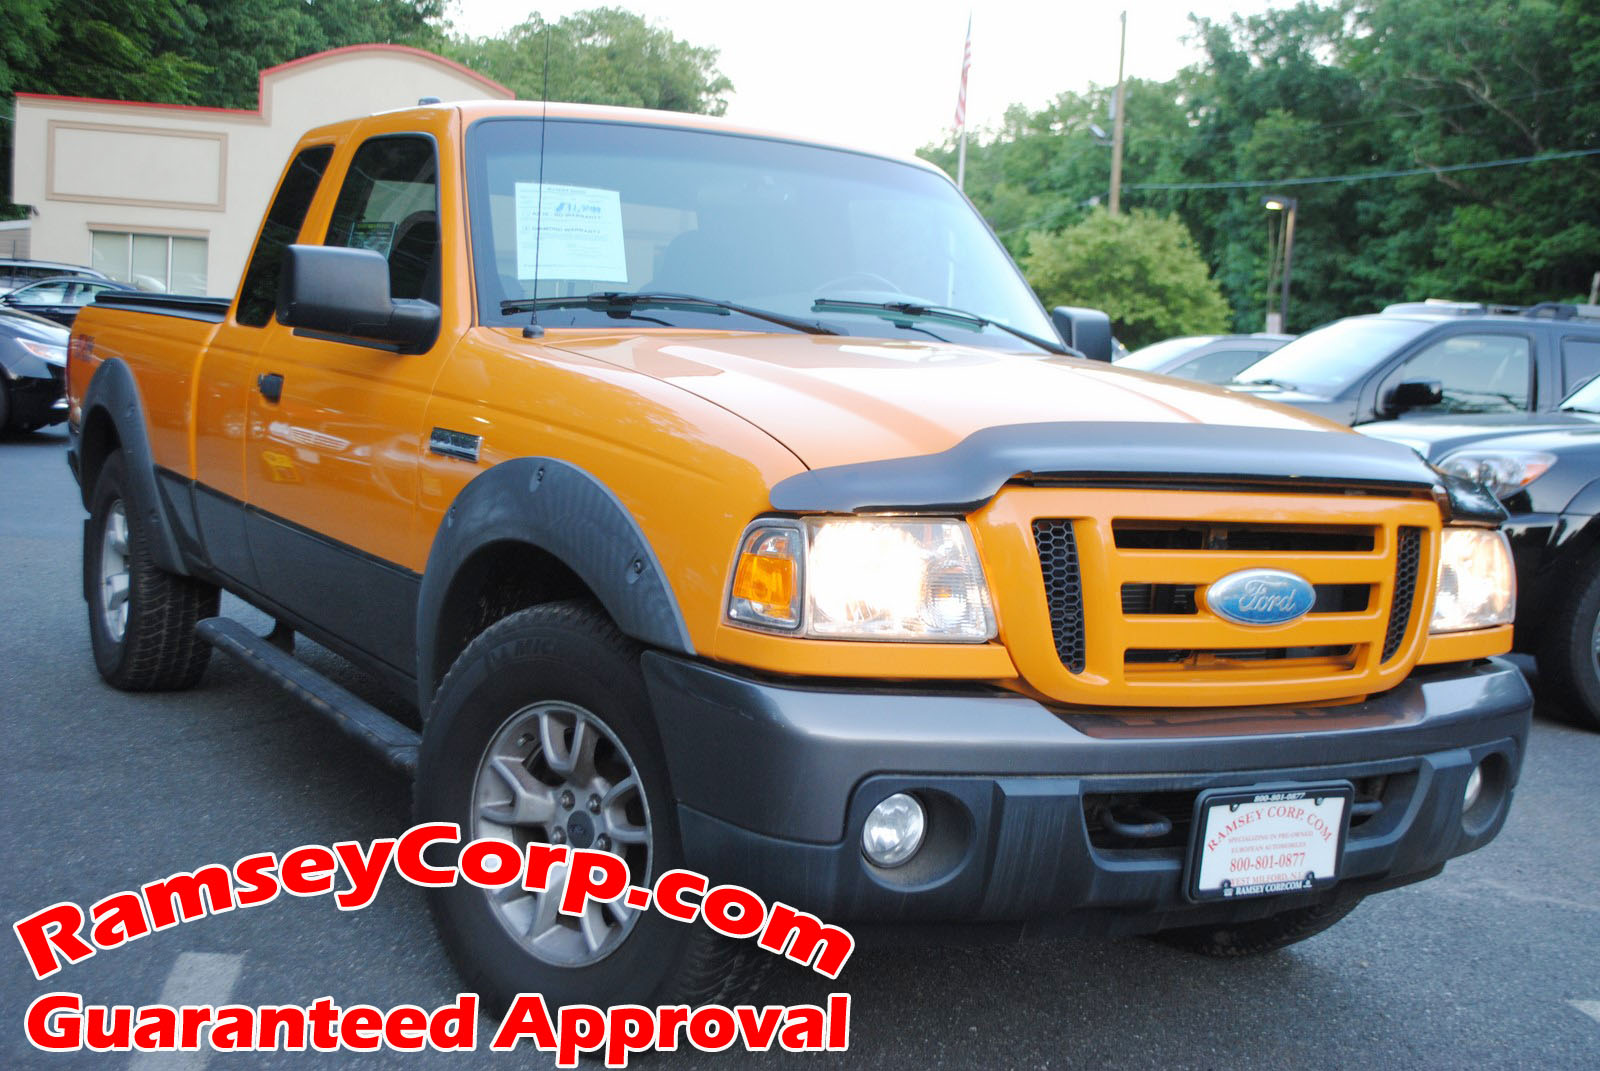 Used 2008 Ford Ranger For Sale at Ramsey Corp  | VIN: 1FTZR45E18PA00939